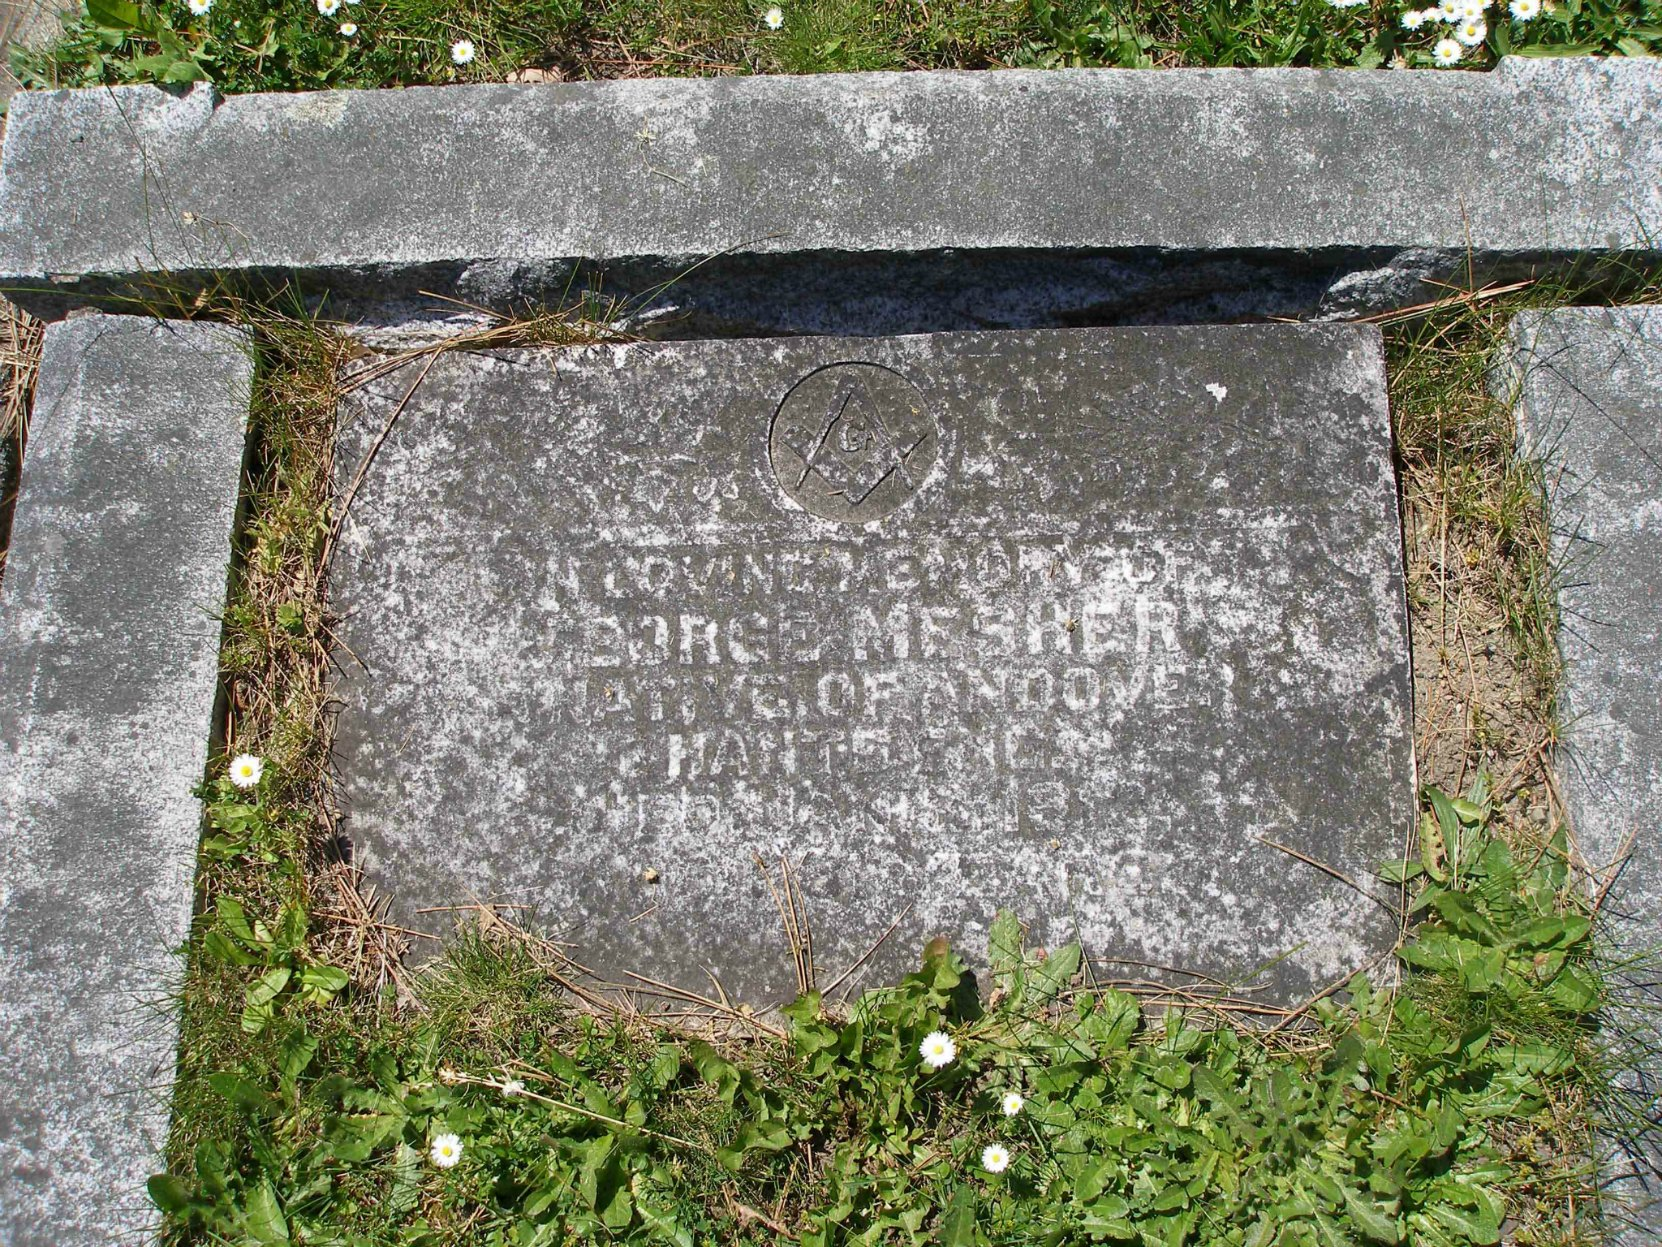 George Mesher headstone, Ross Bay Cemetery, Victoria, B.C.